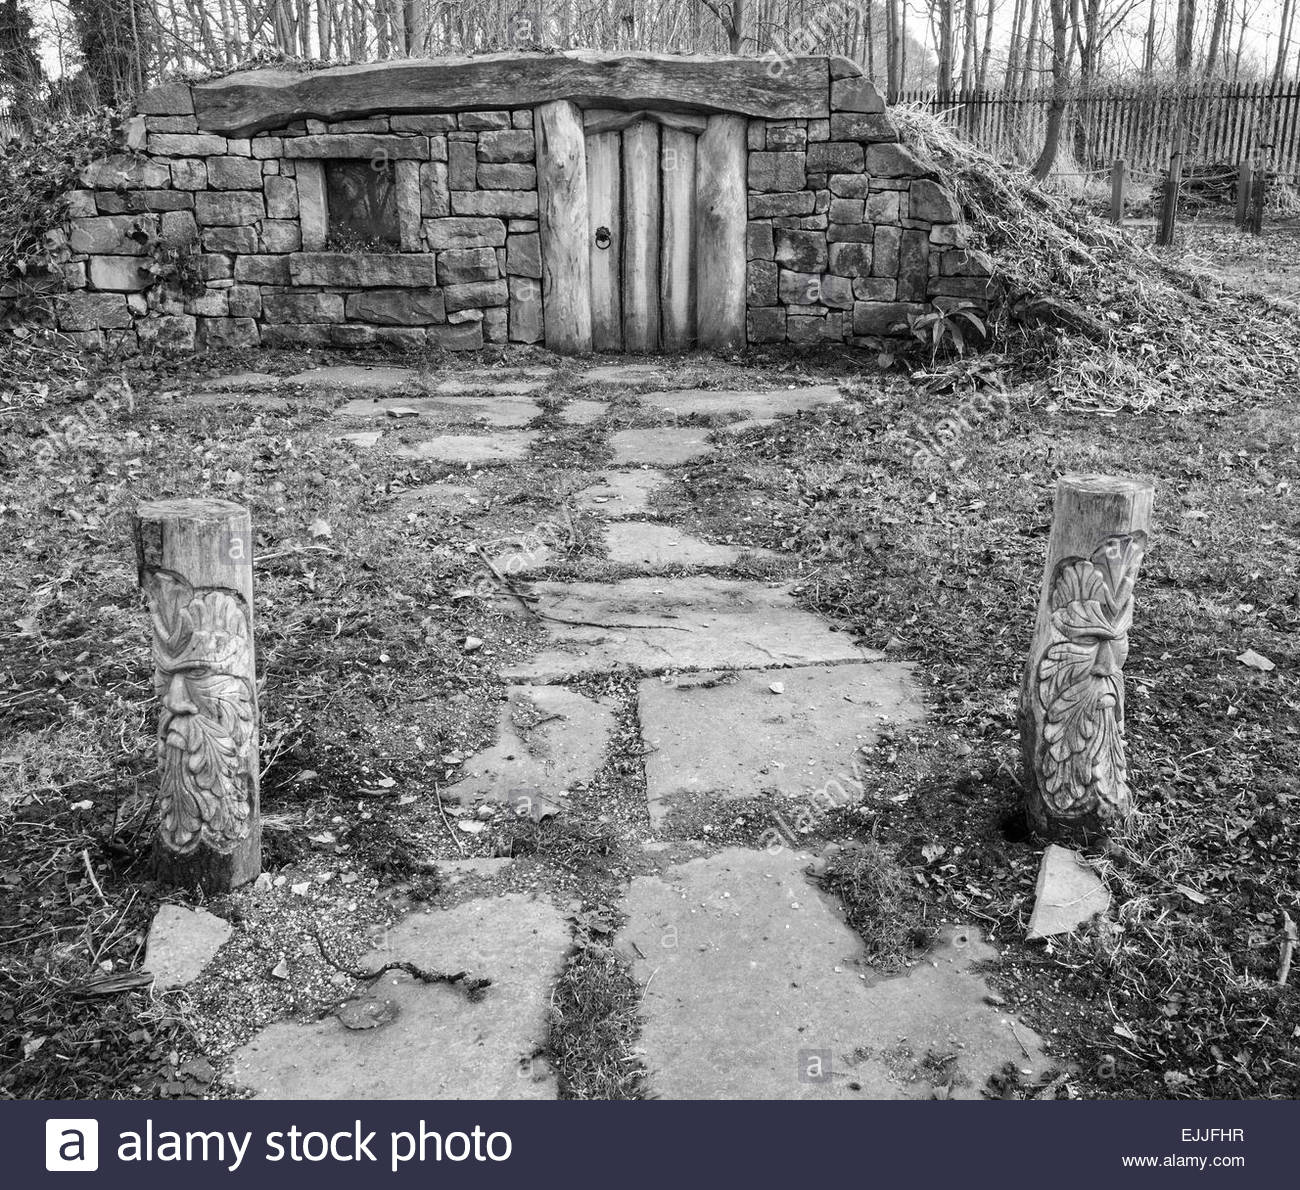 Approach to a Hobbit's home - Stock Image